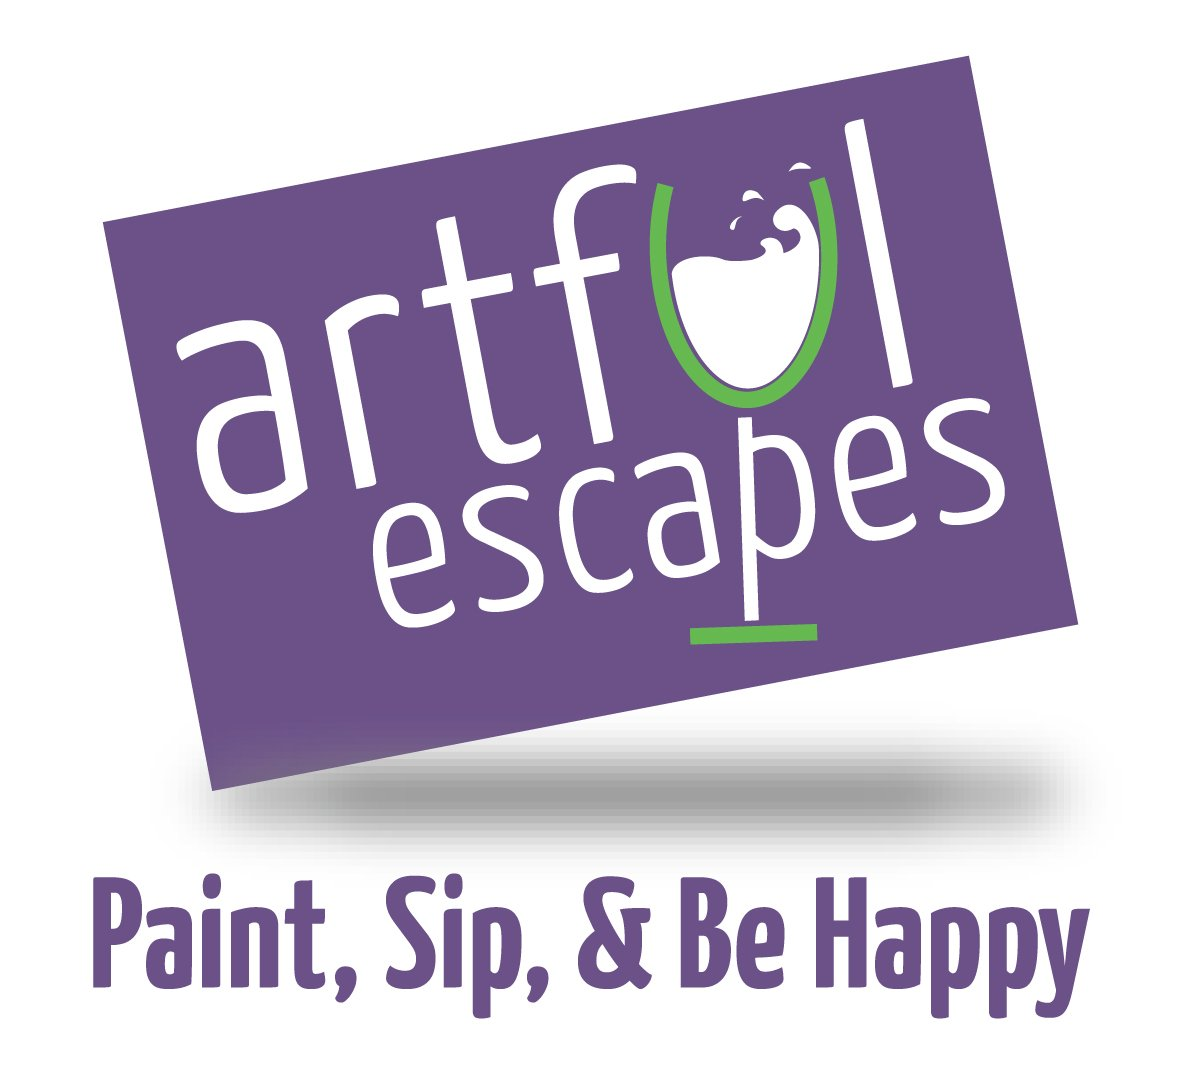 Artful Escapes